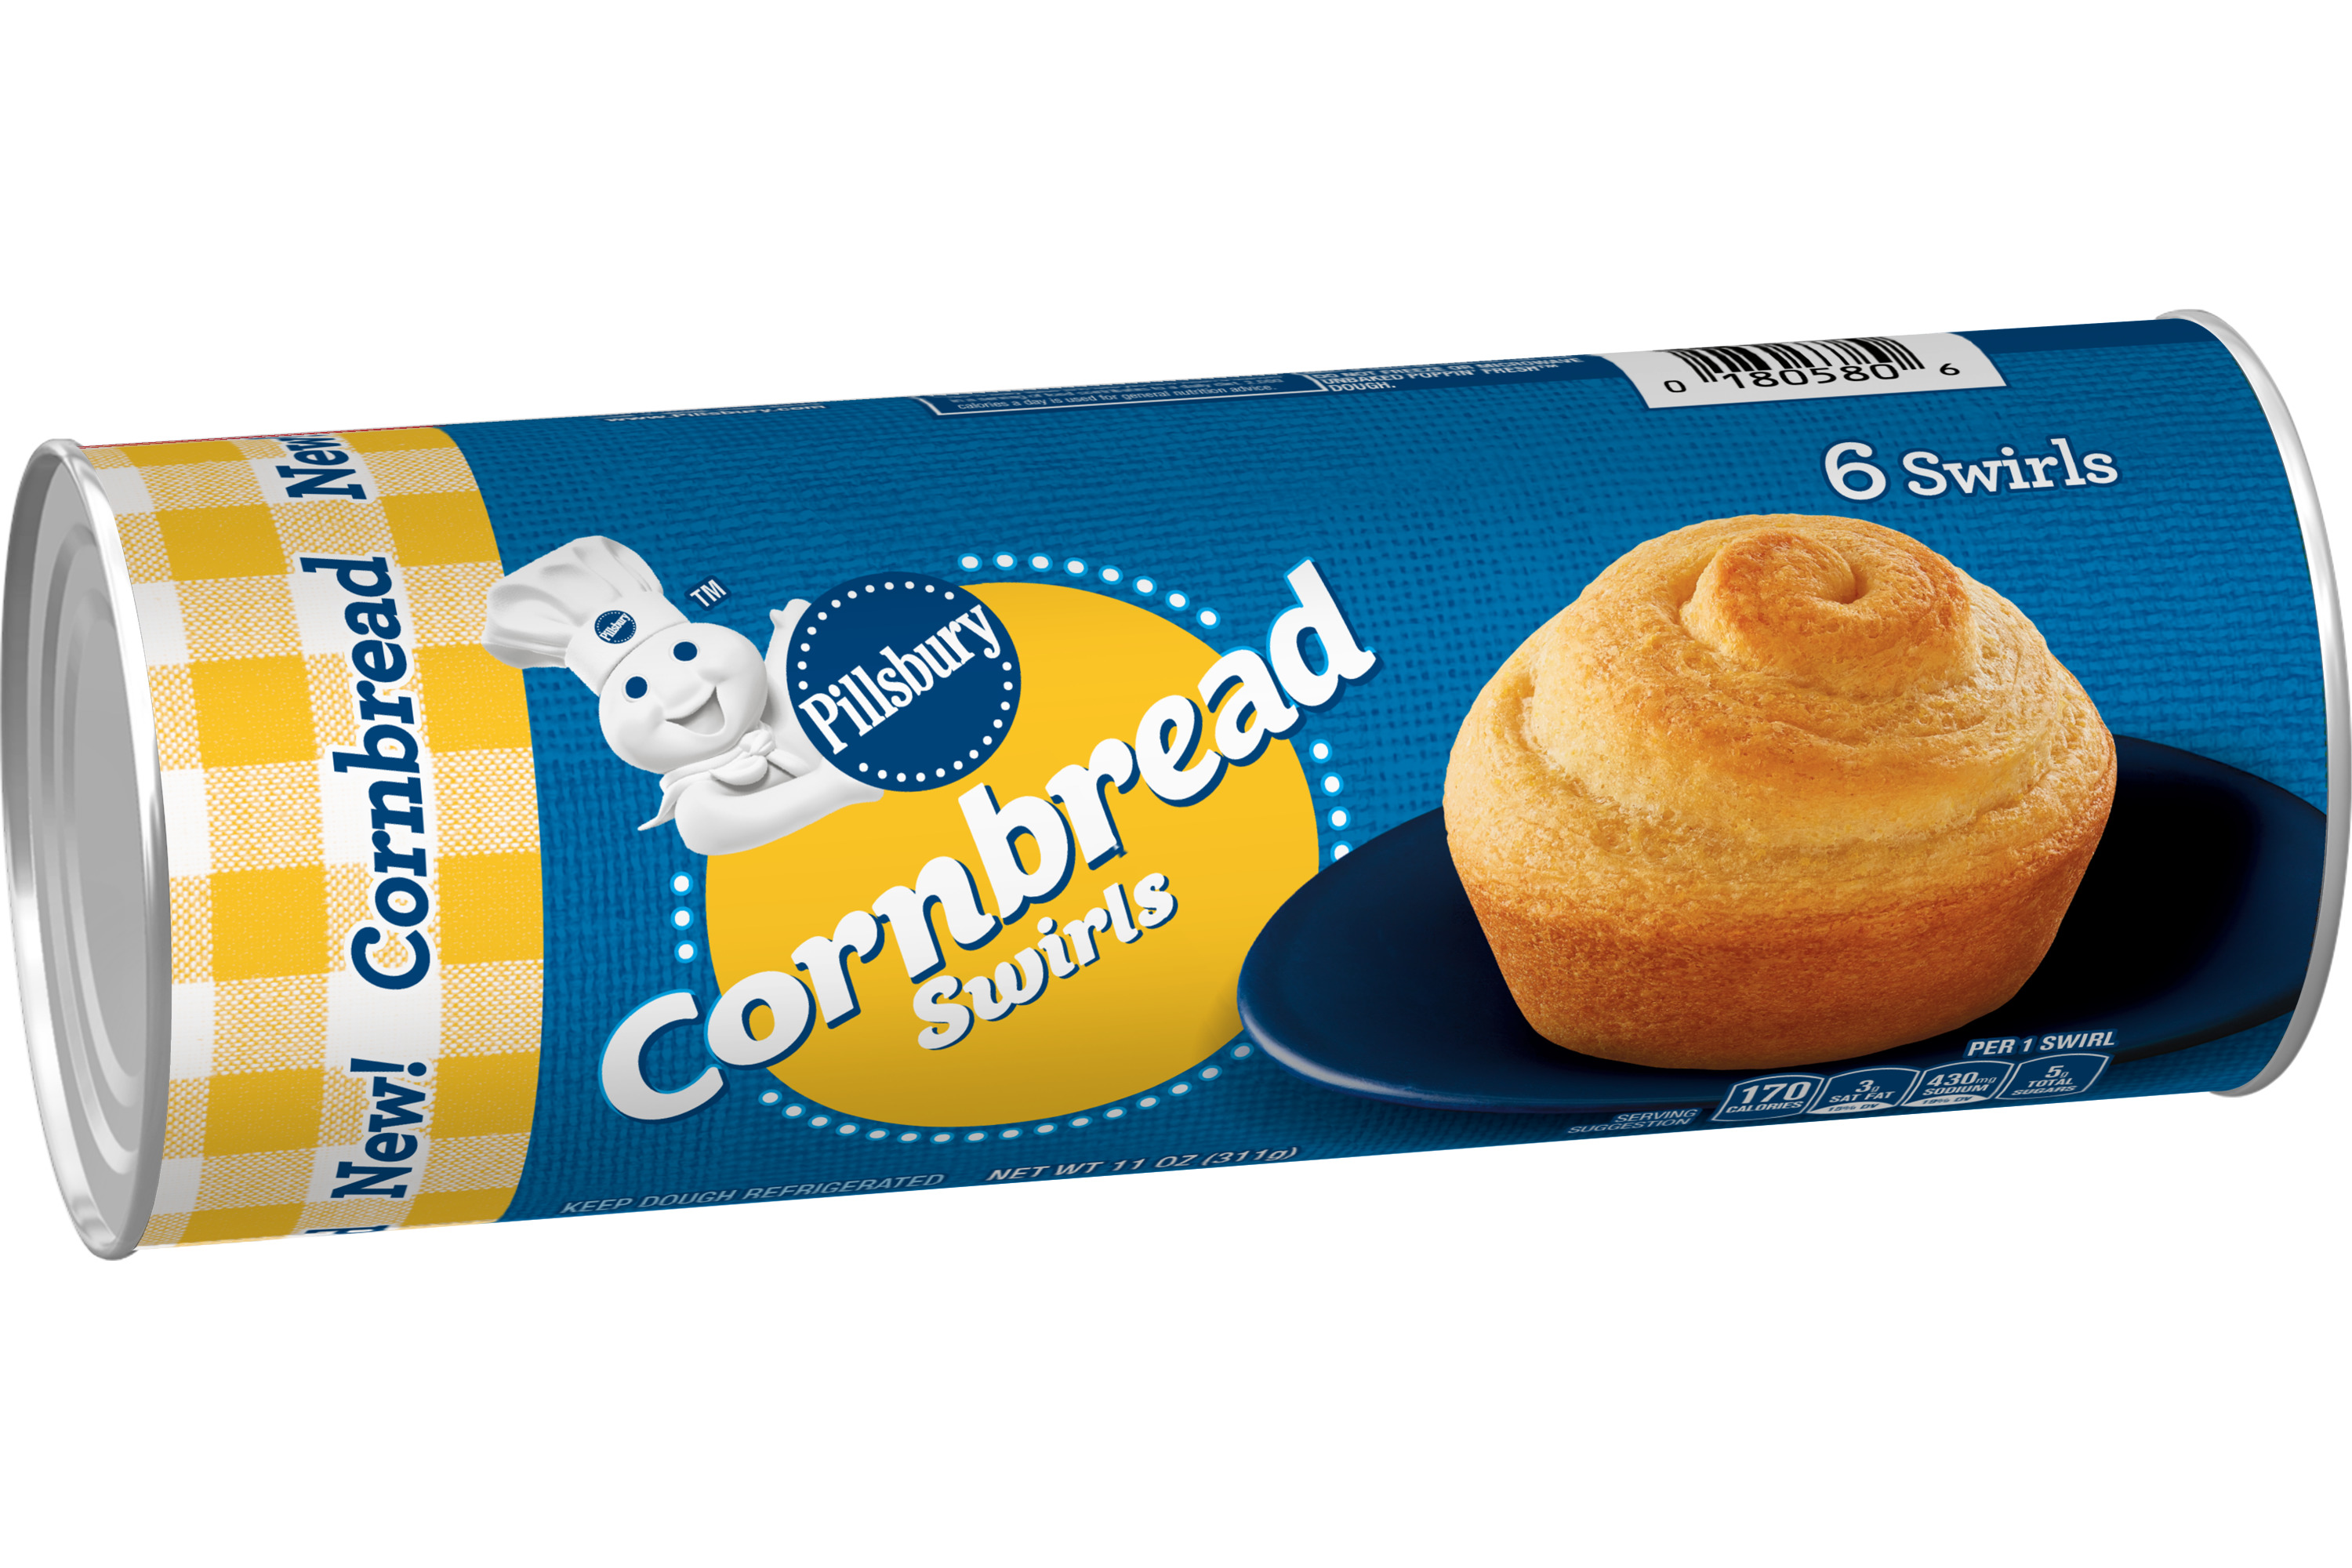 A can of Pillsbury Cornbread Swirls on a white background